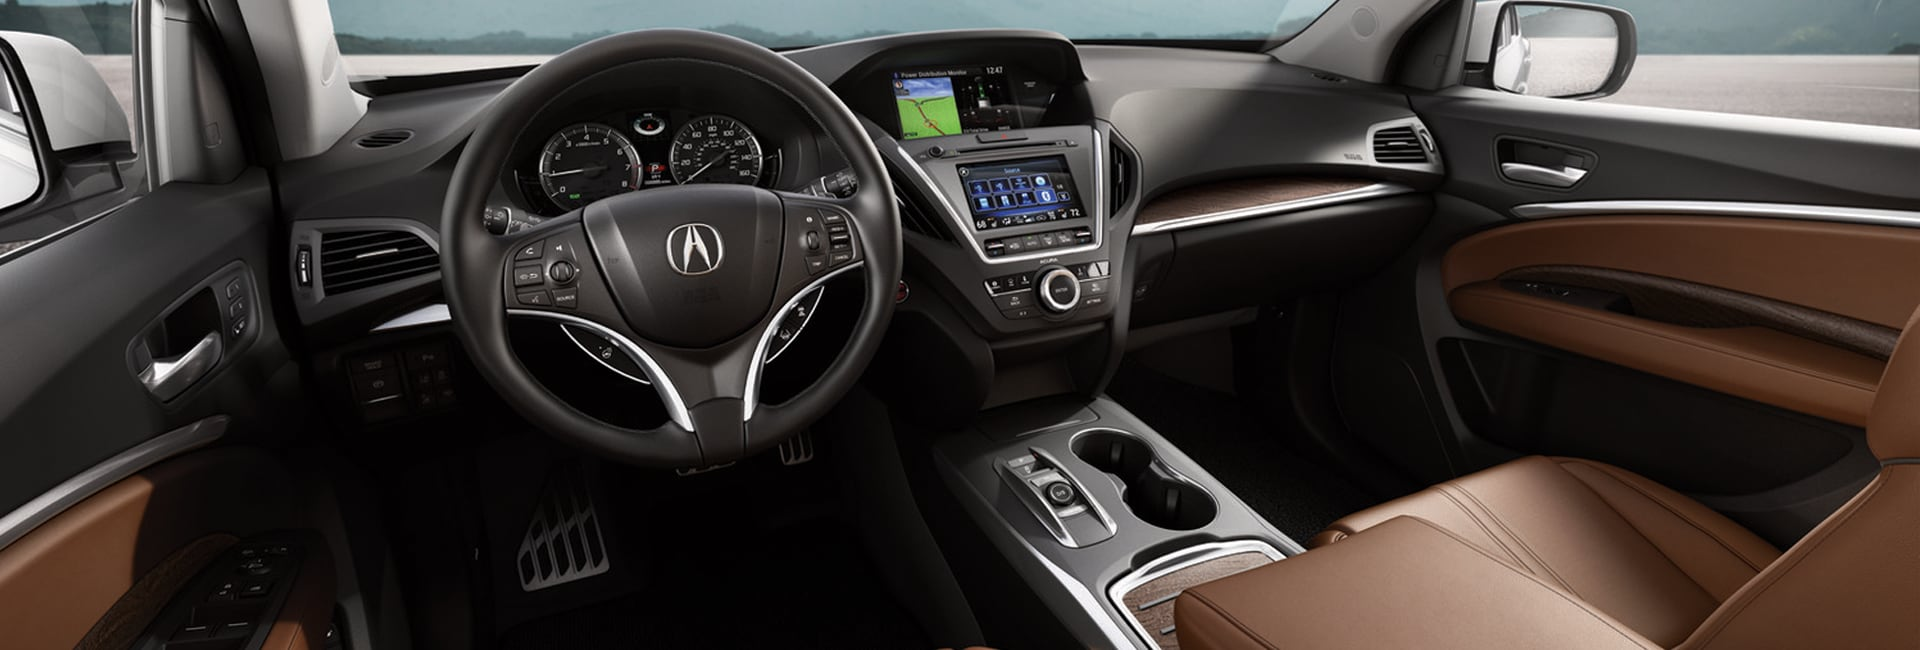 2020 Acura MDX Interior Features